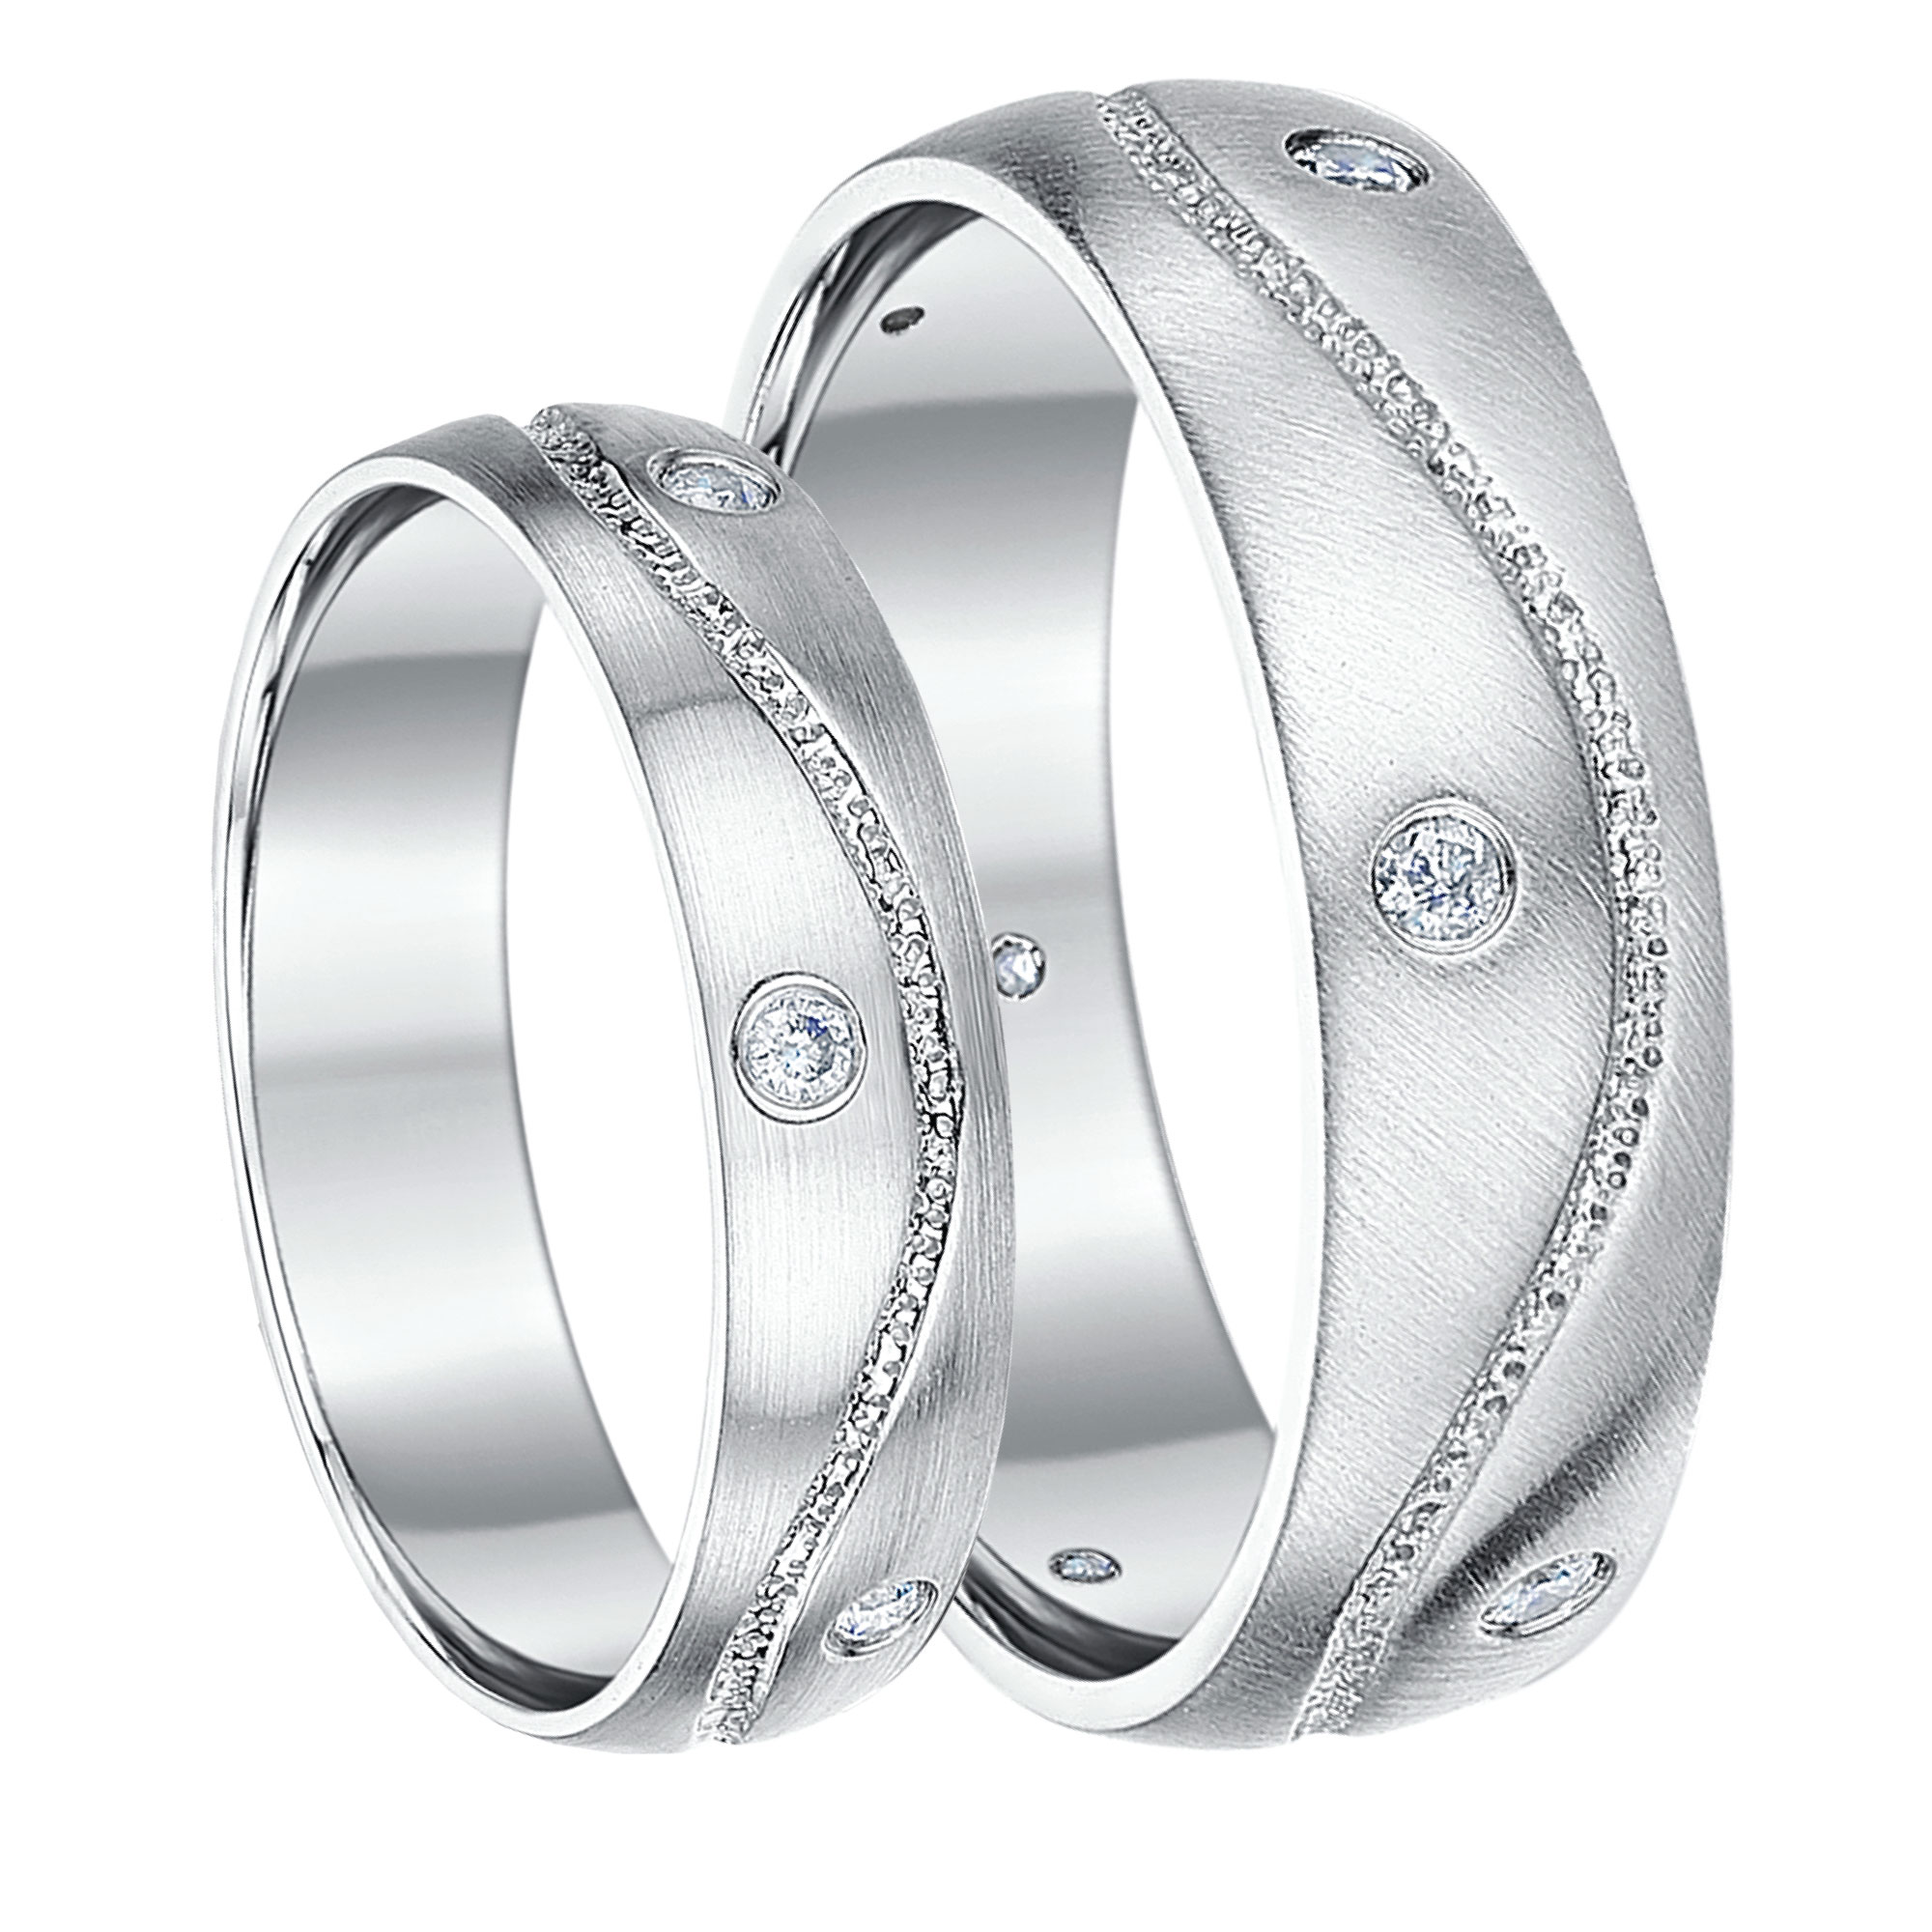 rings silver awesome pictures sets titanium fresh at diamond of ashworthmairsgroup amp patterned wedding